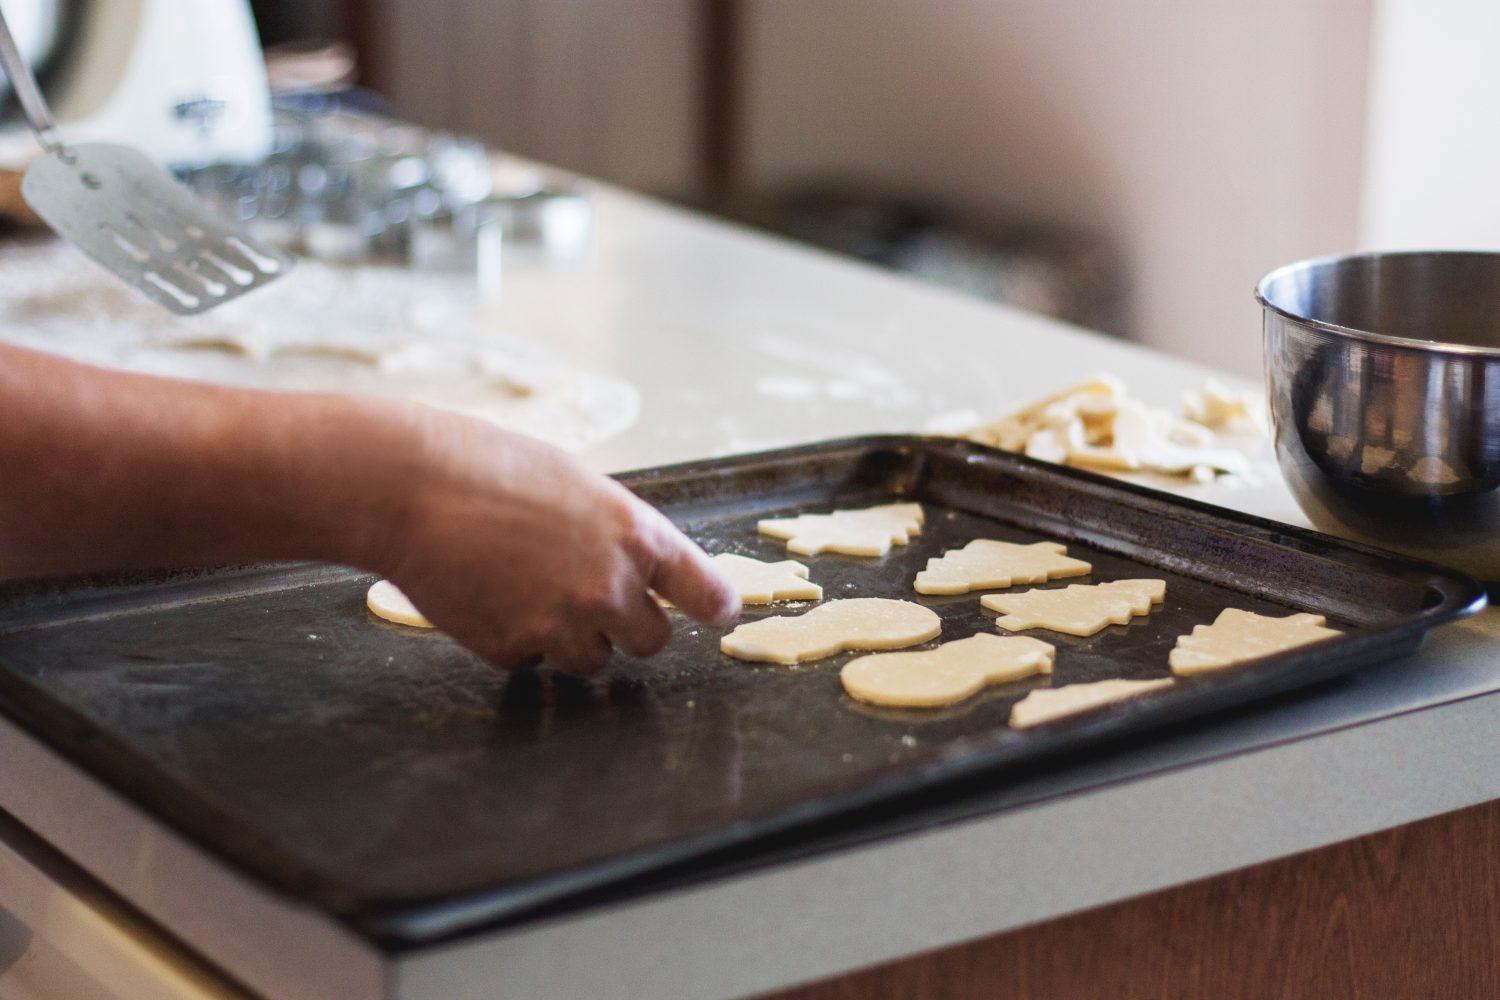 Person putting Christmas cookies on baking sheet